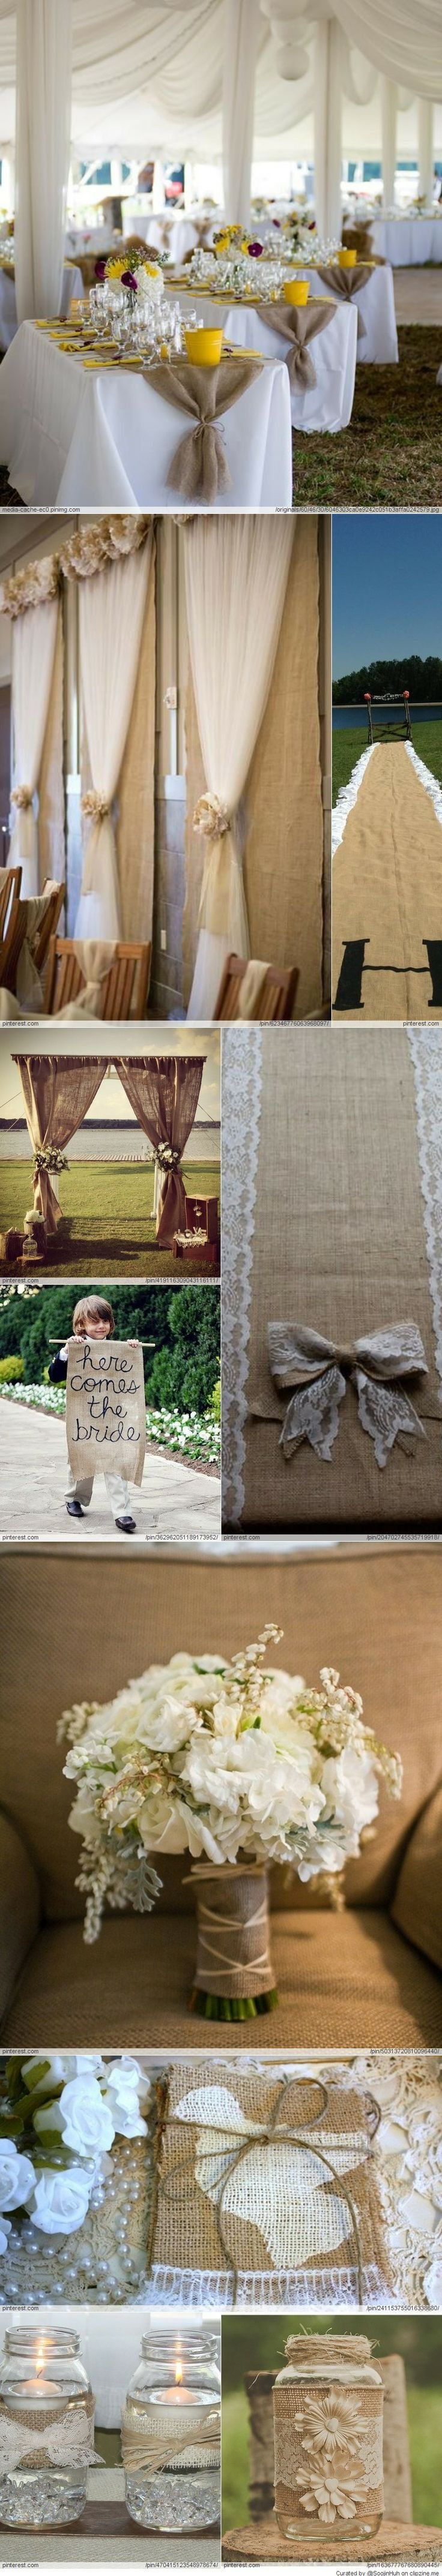 I like the burlap, net, flowers idea for curtains.